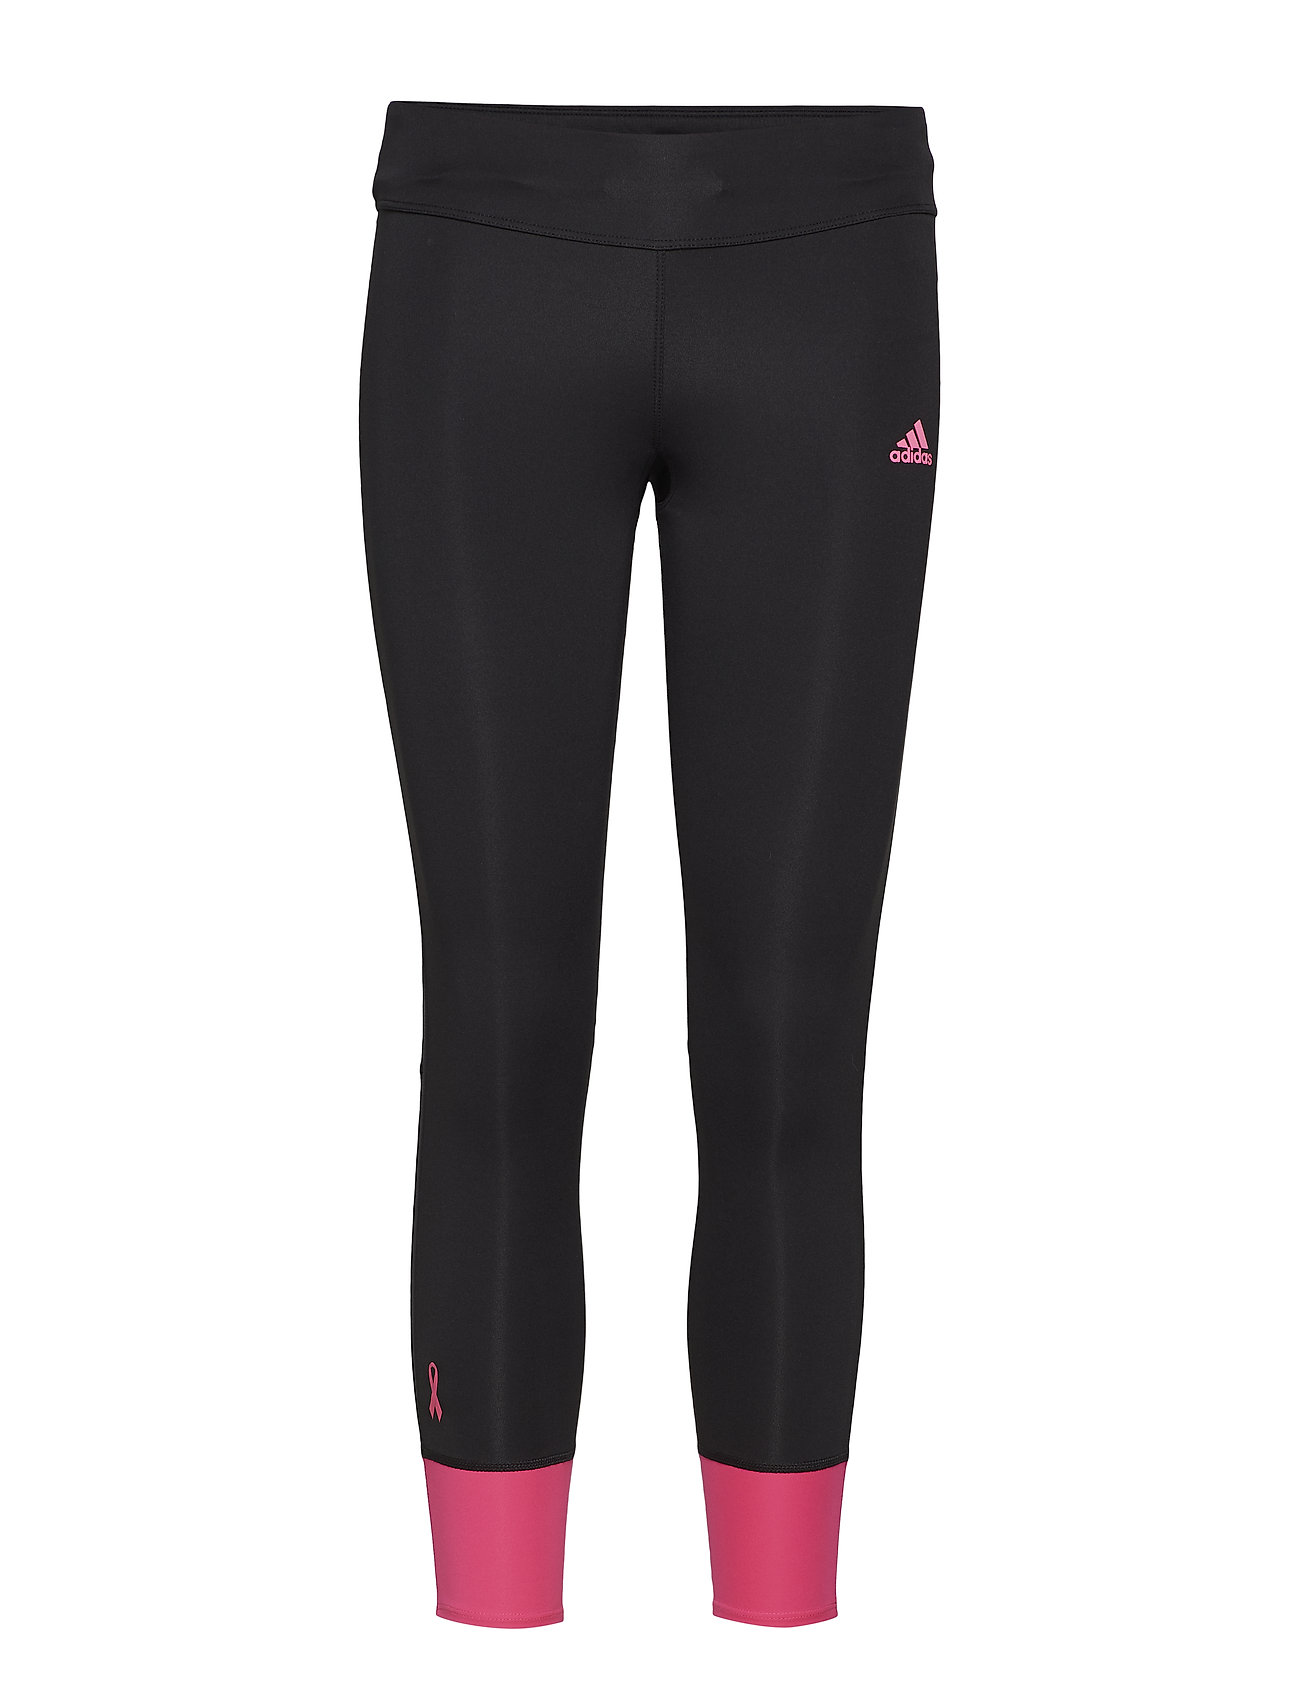 adidas Performance RESPONSE TIGHT - BLACK/SHOPNK